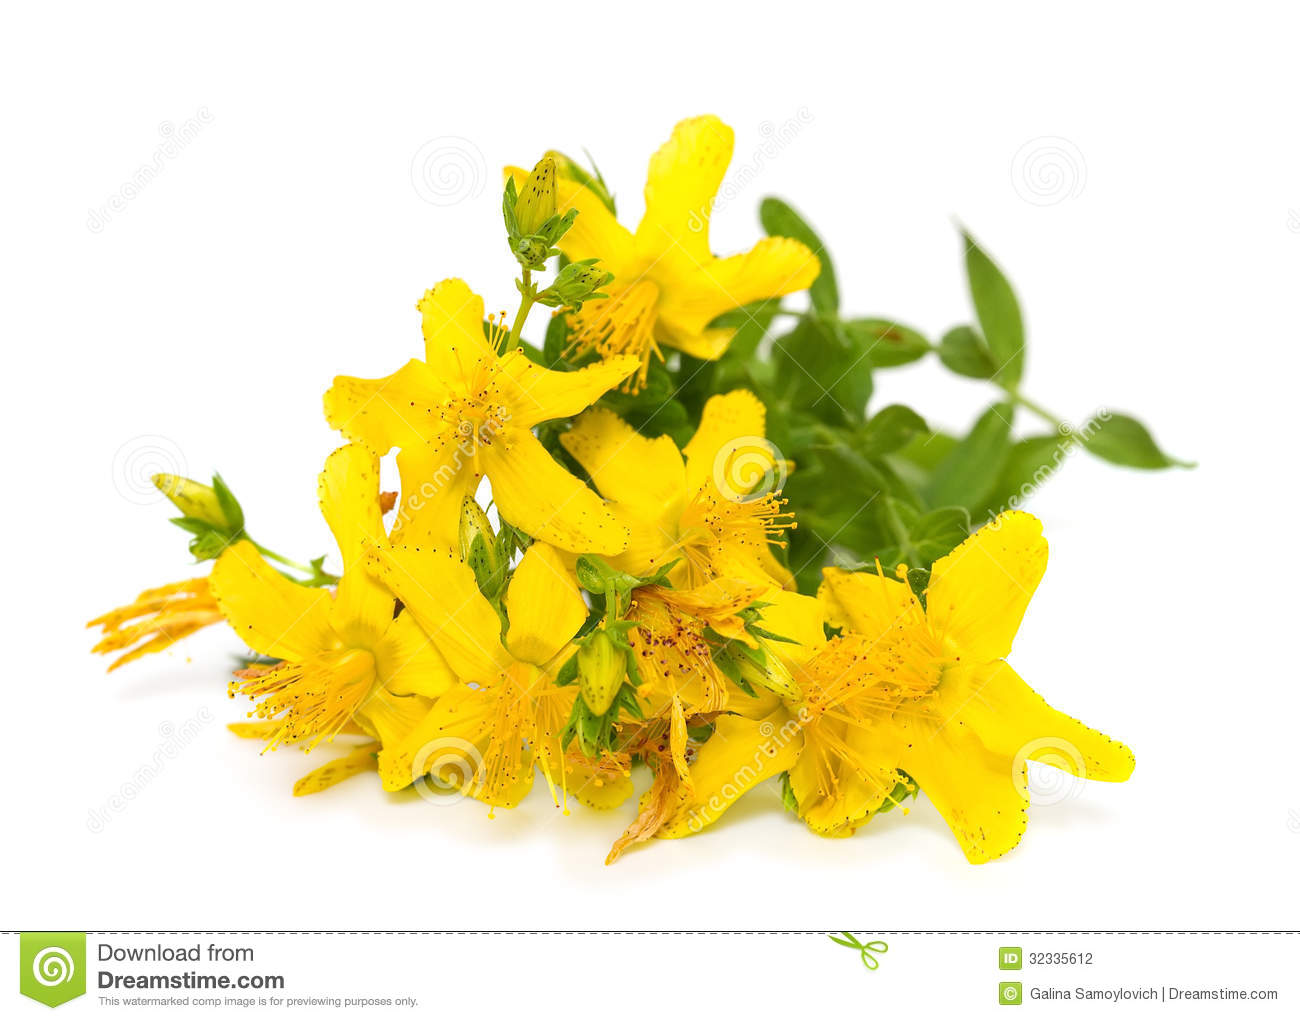 St John's Wort clipart #20, Download drawings